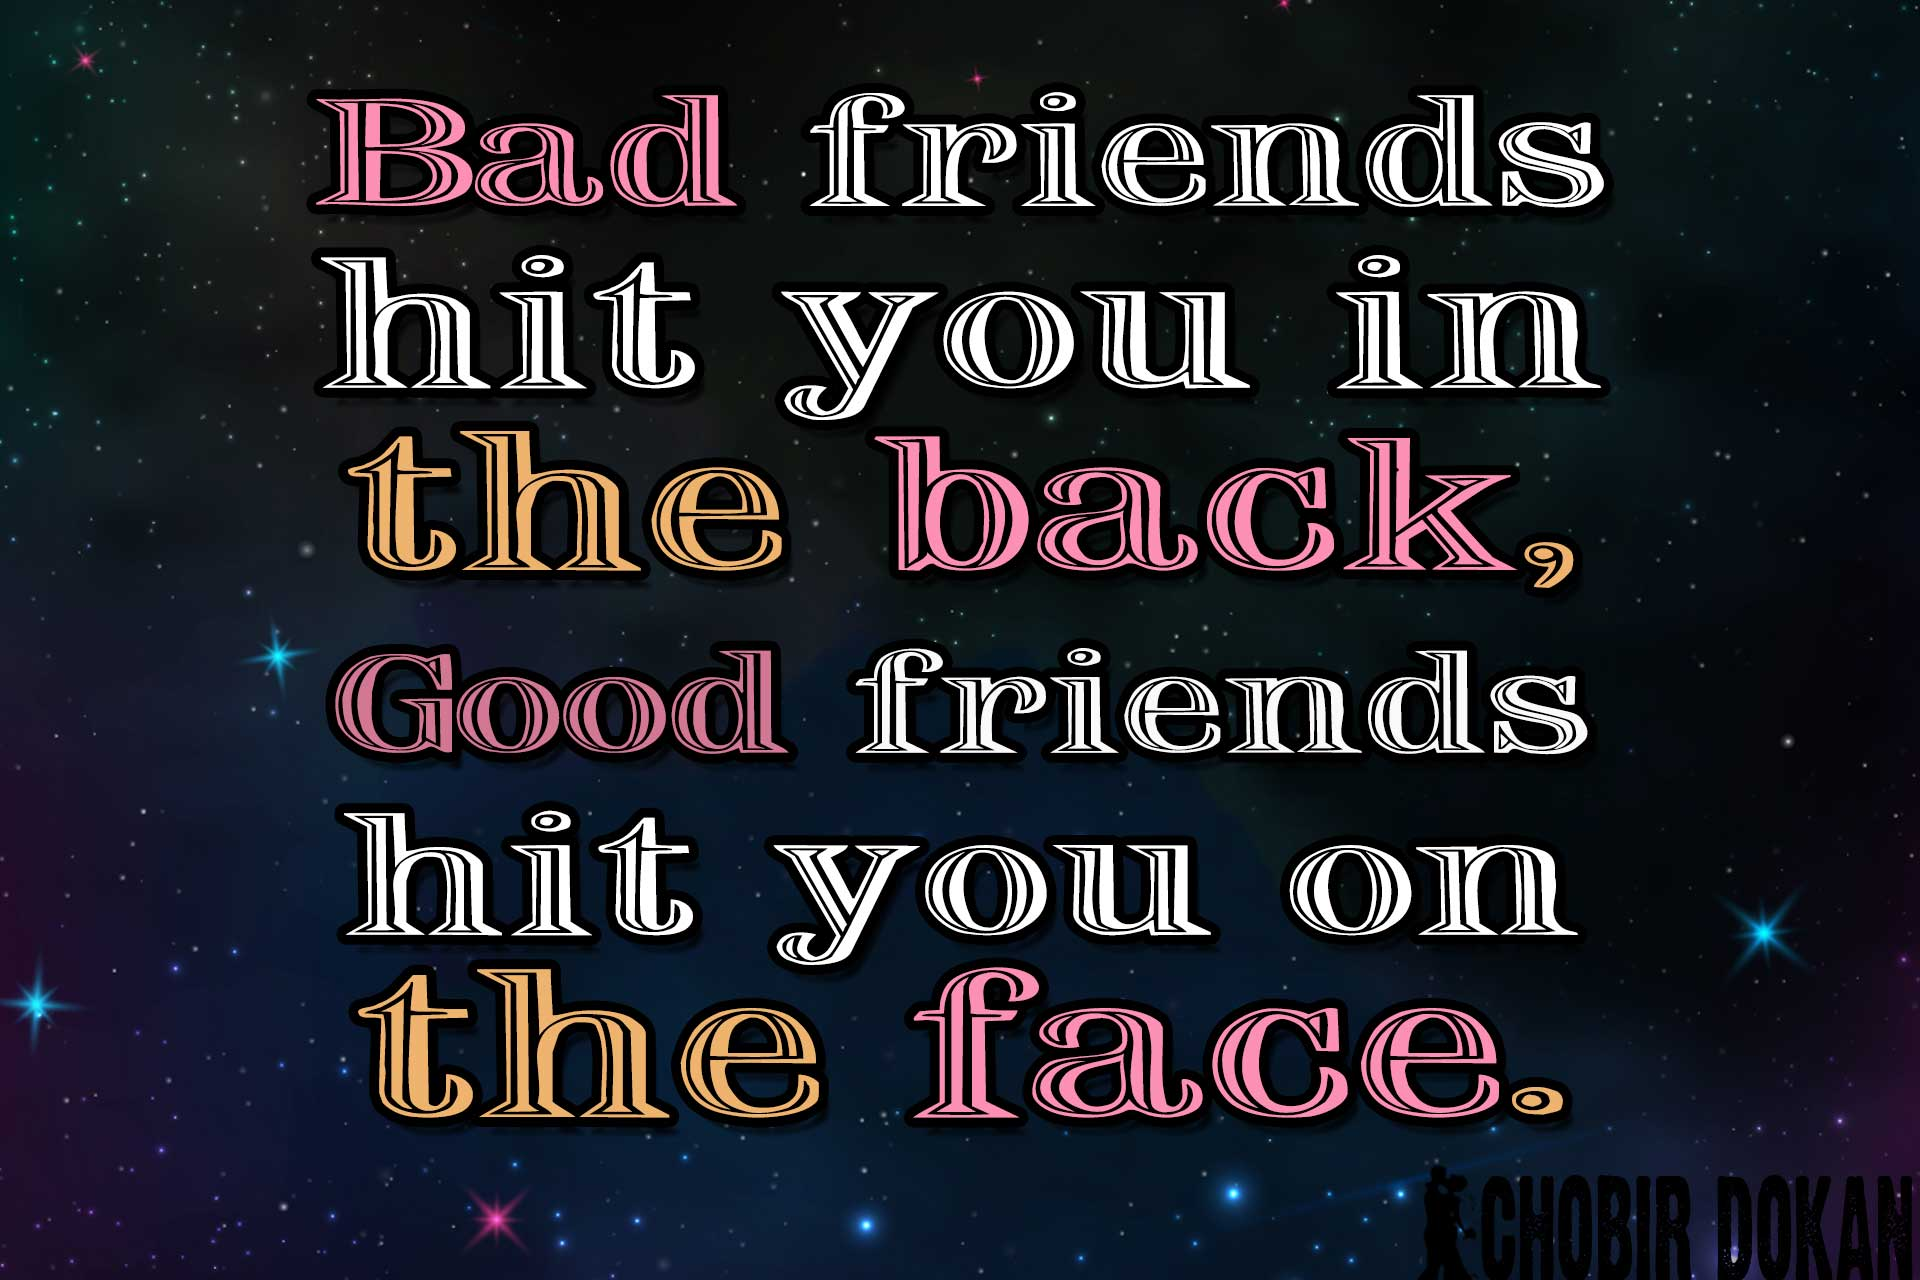 bad friends A man of too many friends comes to ruin, but there is a friend who sticks closer than a brother.